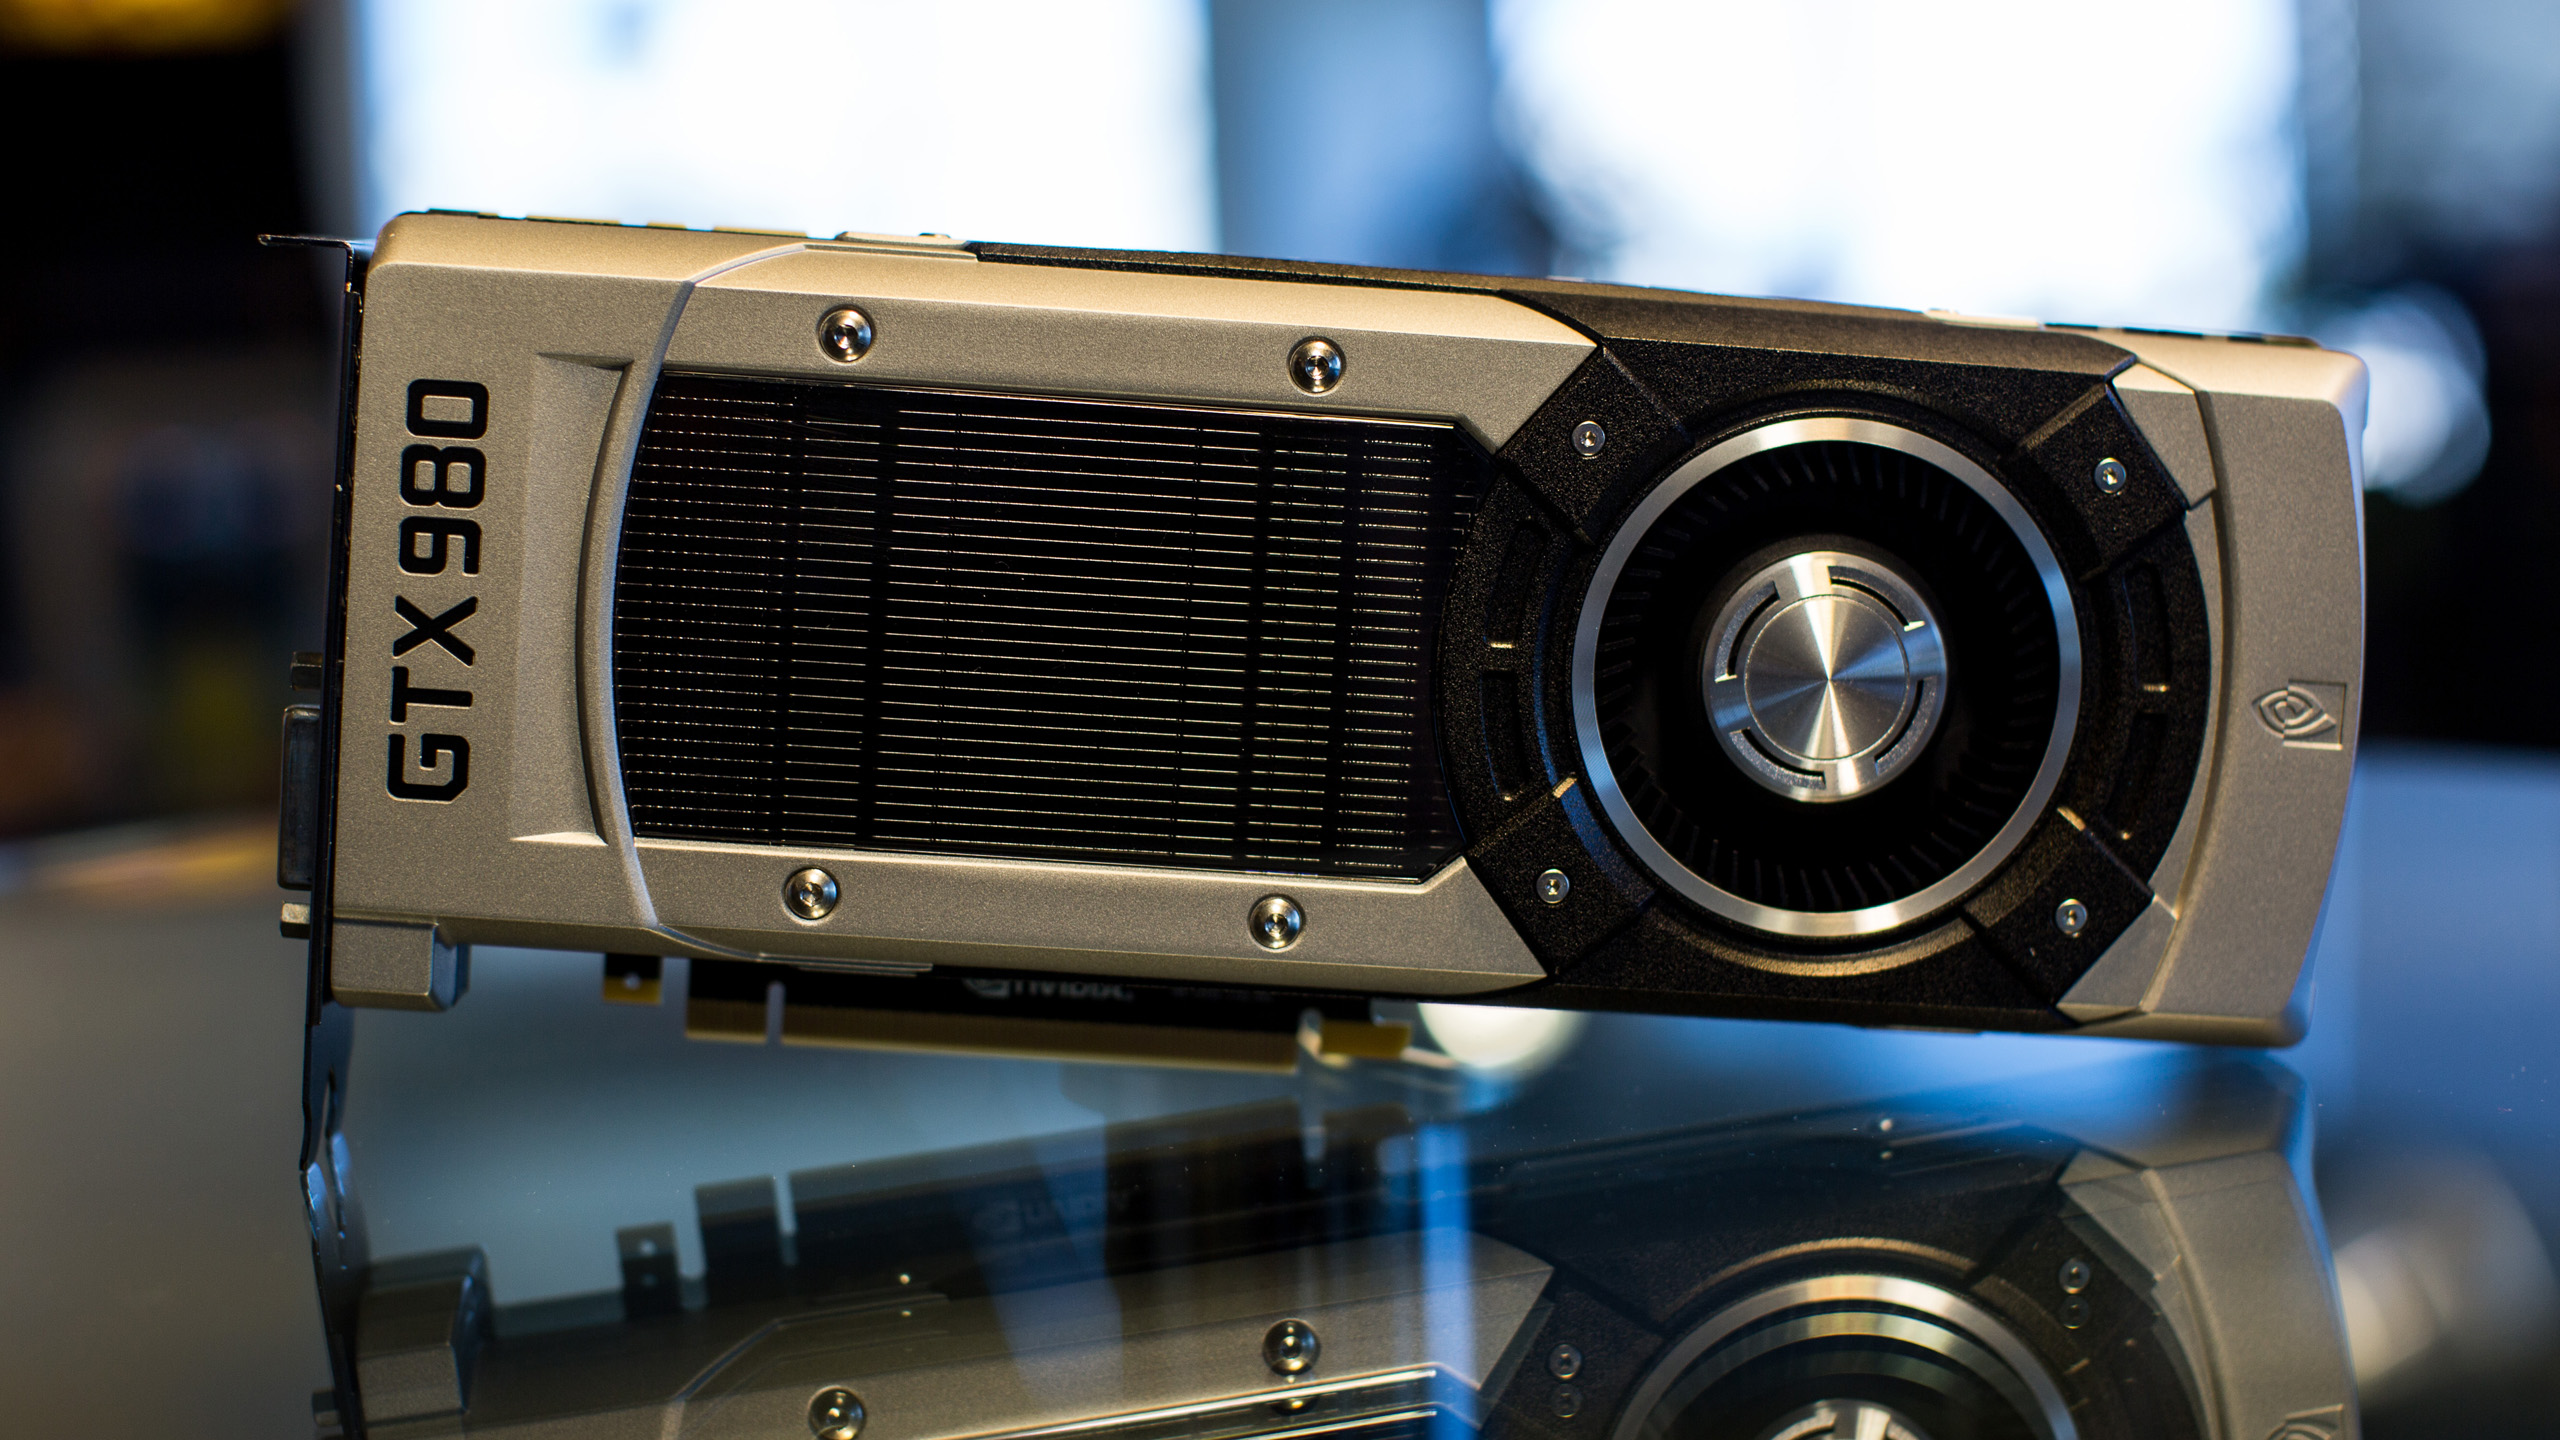 Nvidia GTX 980 tested: SLI, 4K, and single-GPU benchmarks